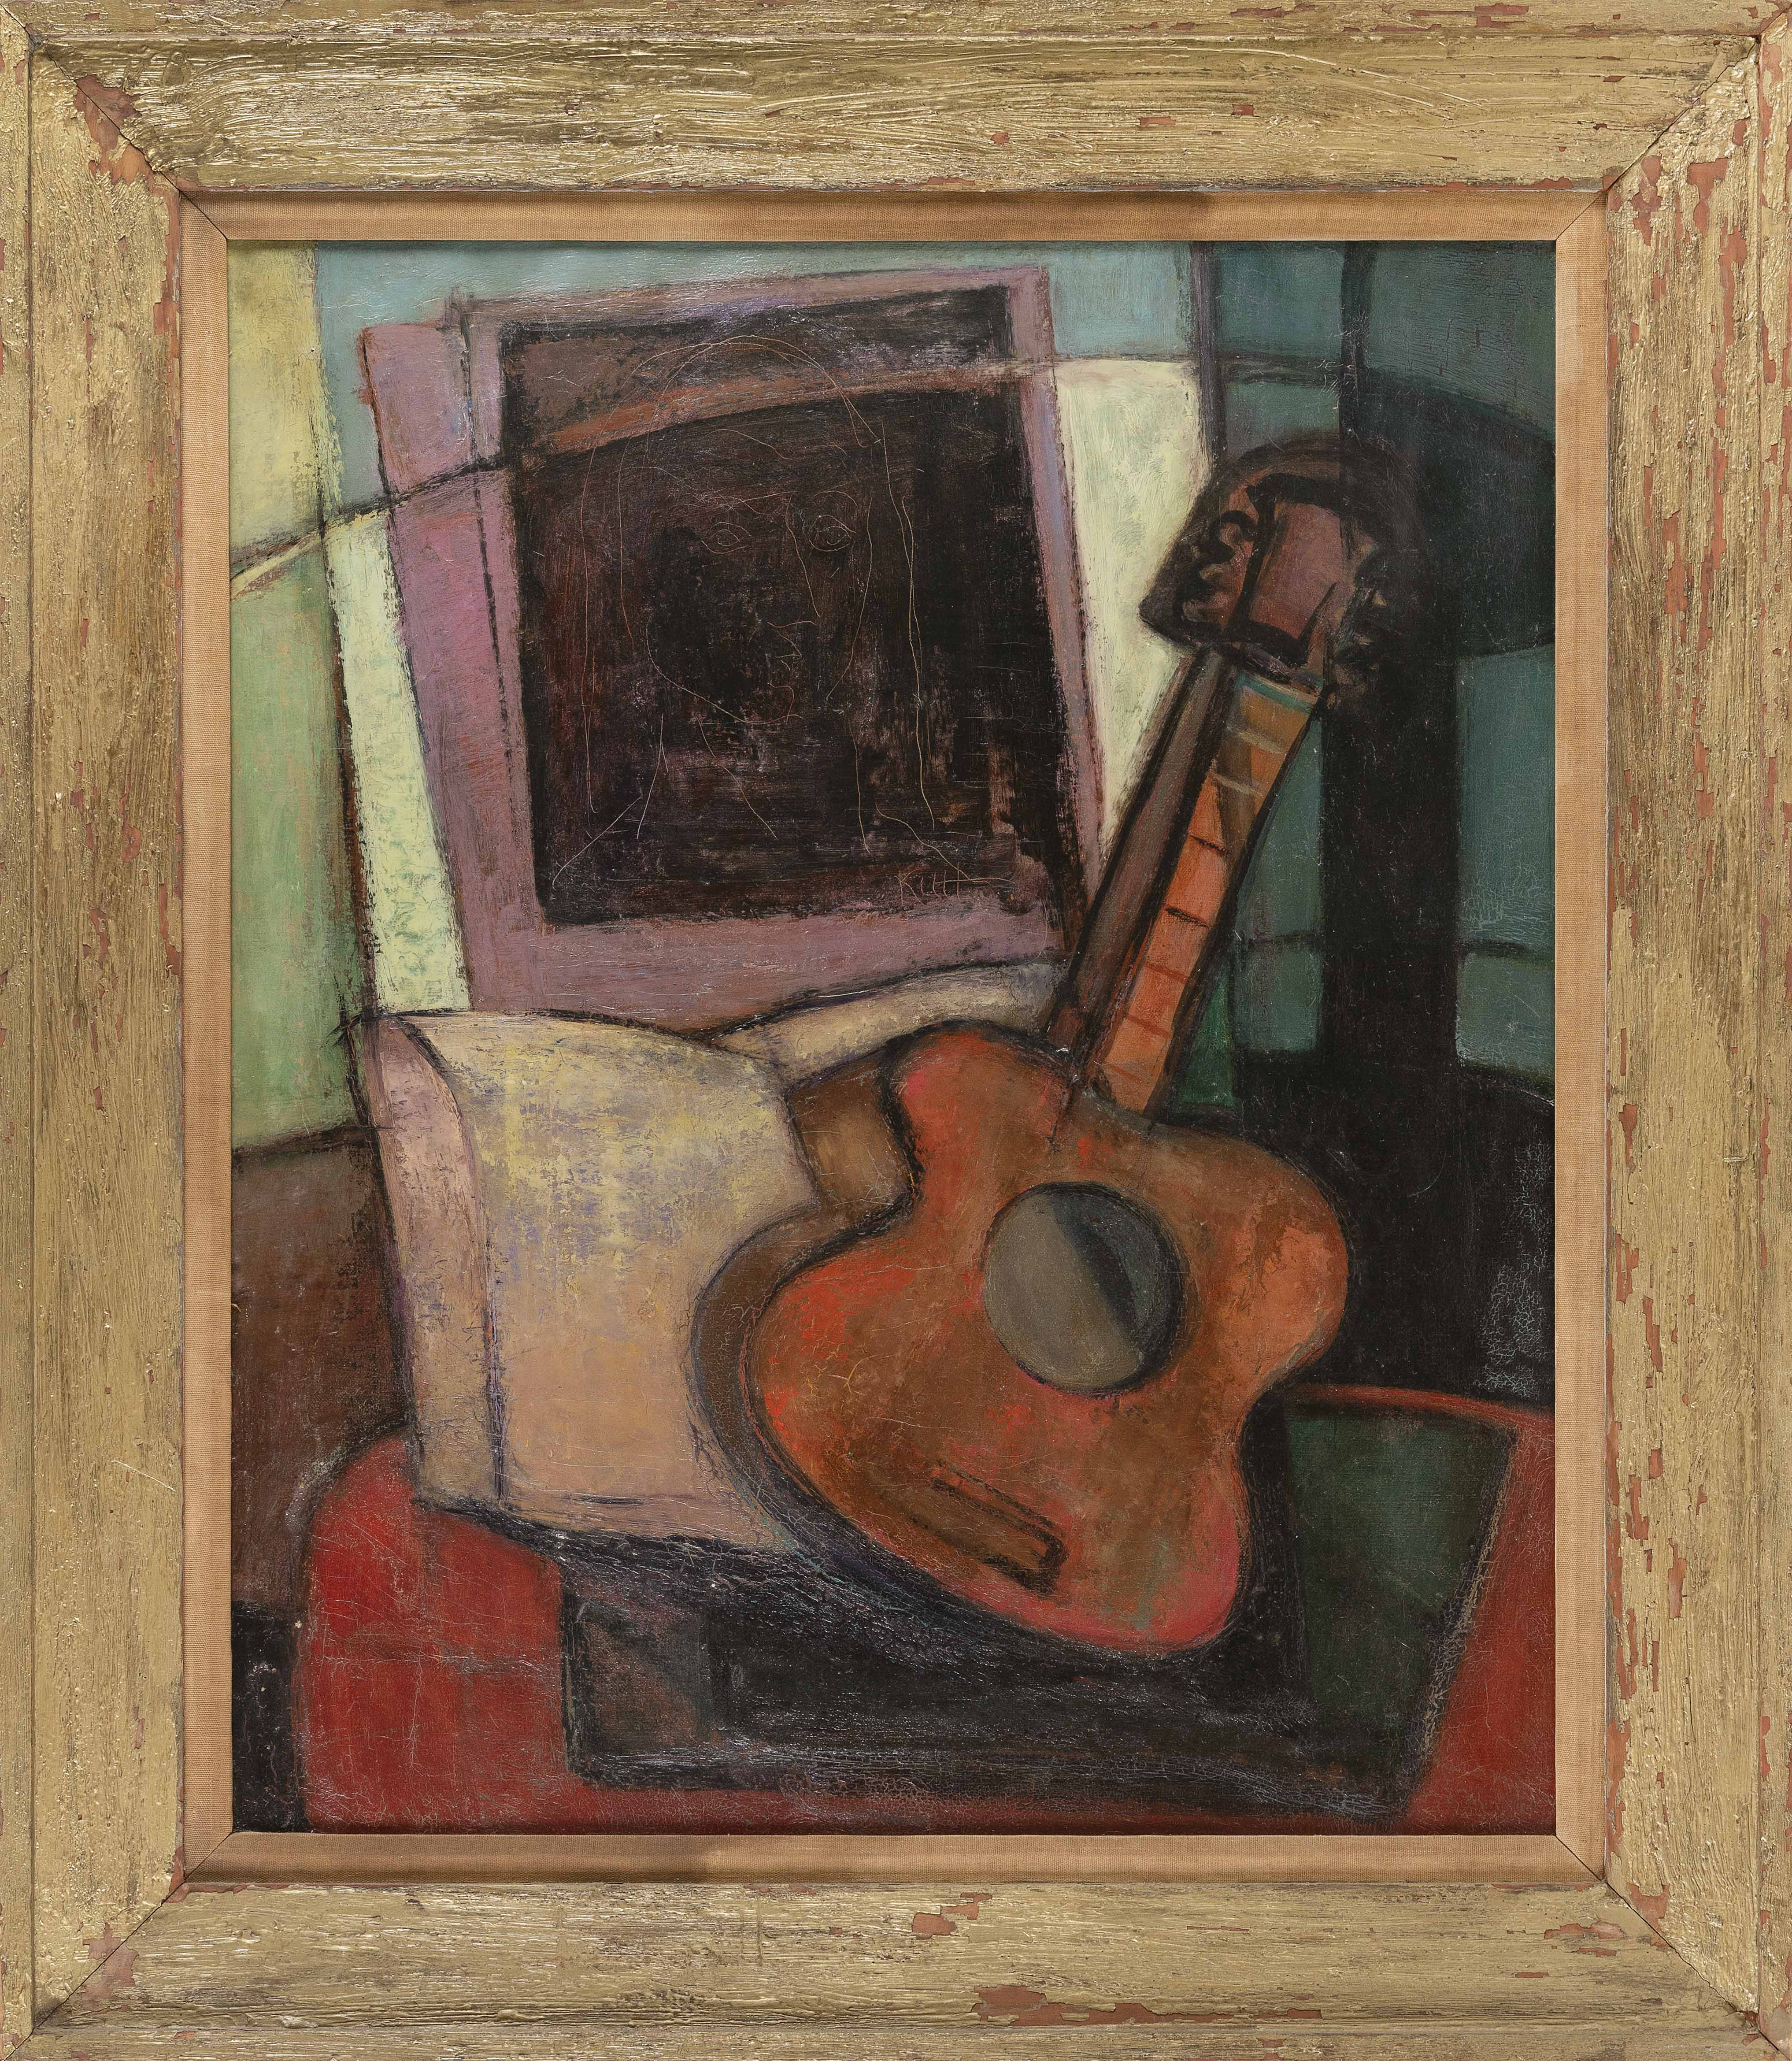 LINY KULL (Switzerland, 1919-2007), Interior scene with guitar and painting., Oil on canvas, 34